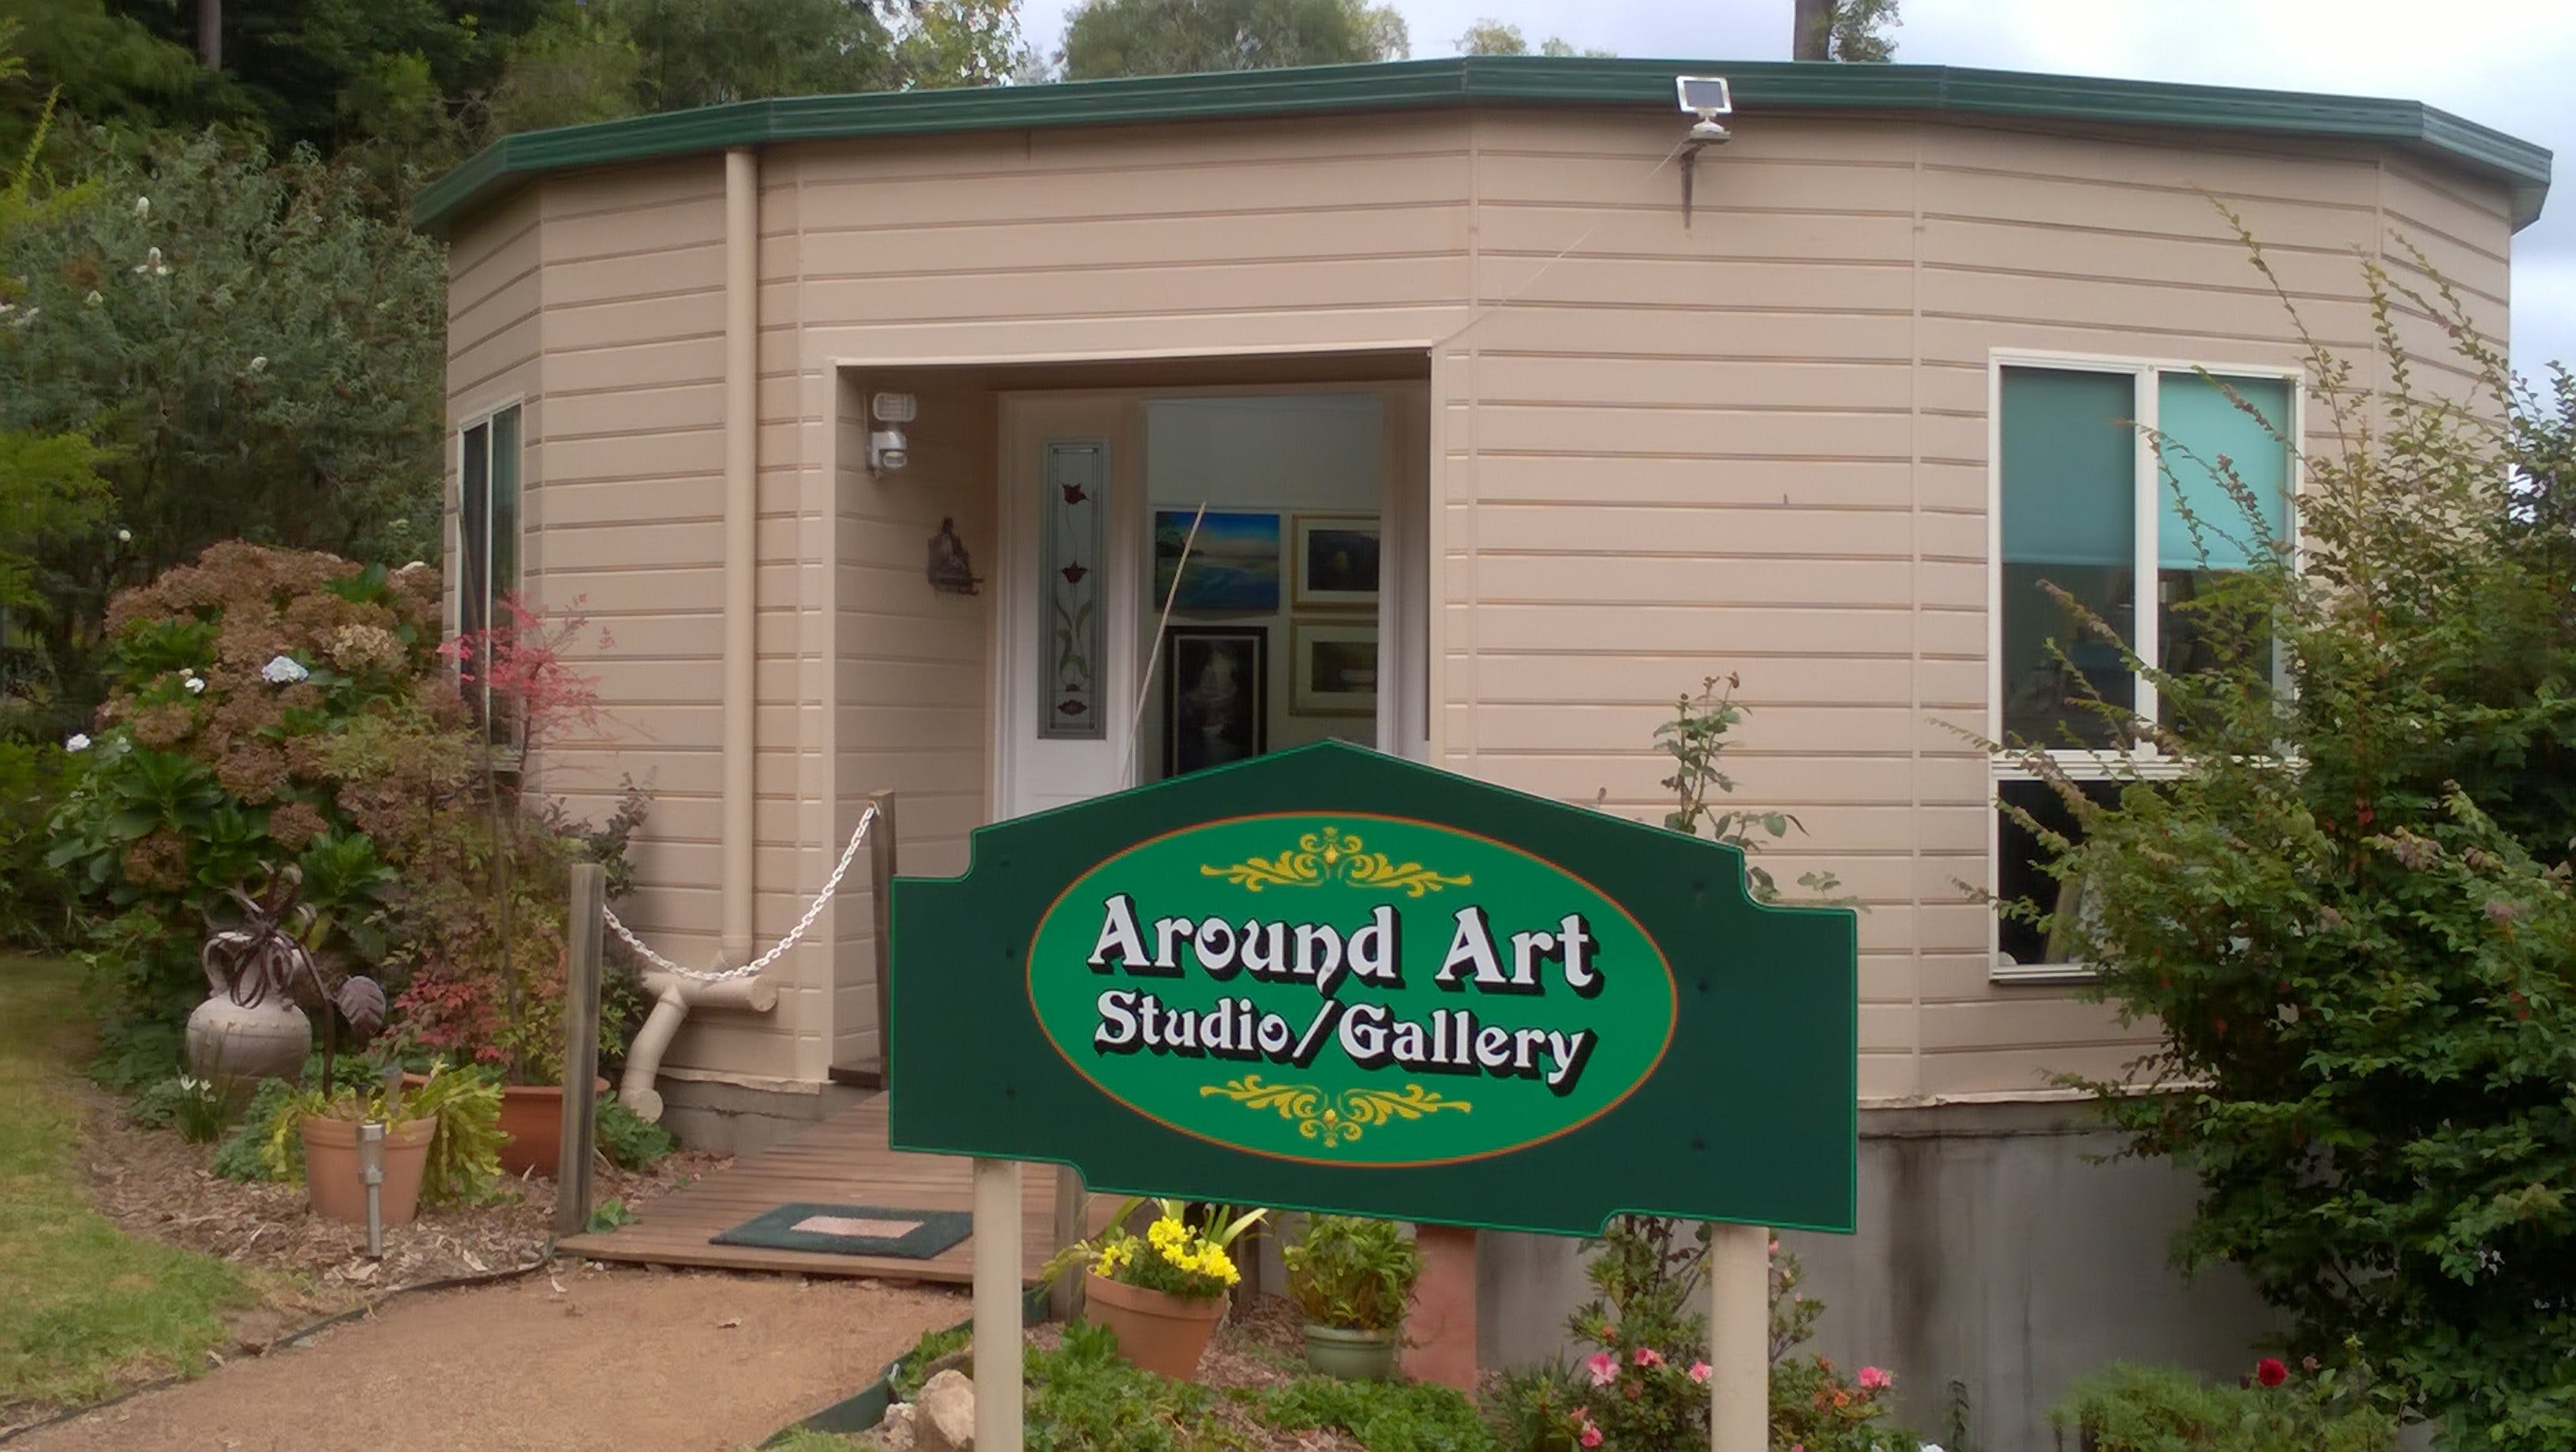 Around Art Studio/Gallery - New South Wales Tourism